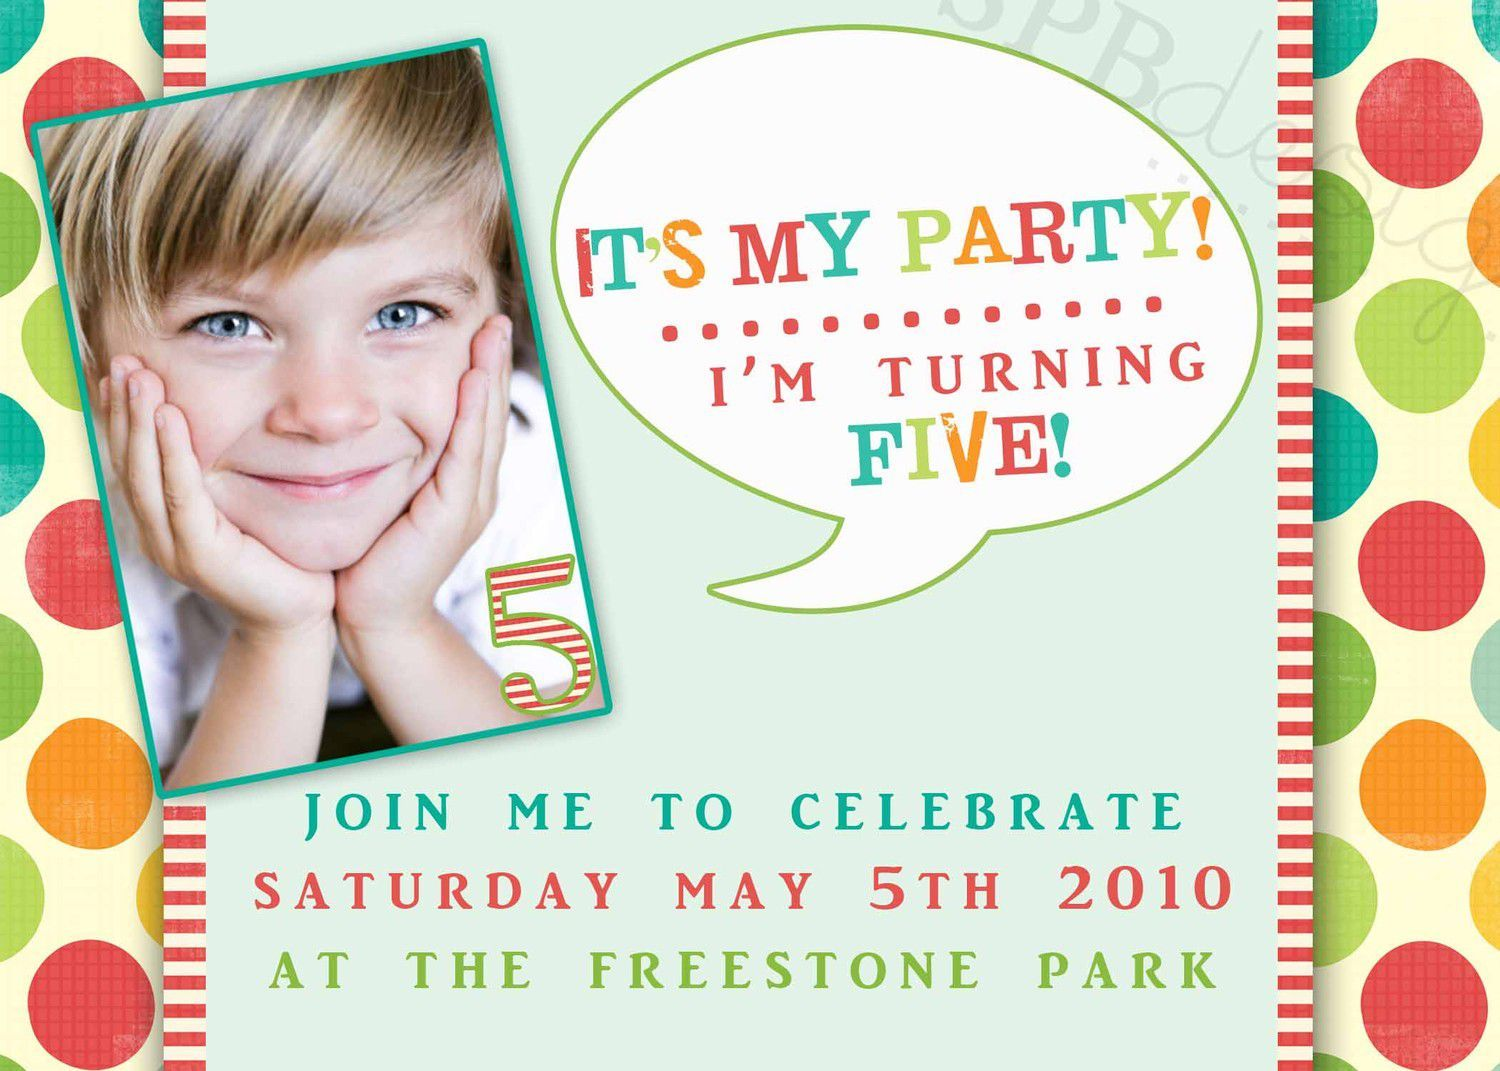 Birthday Invitation Wording For Year Old Boy Birthday - Birthday invitation messages for 5 year old boy